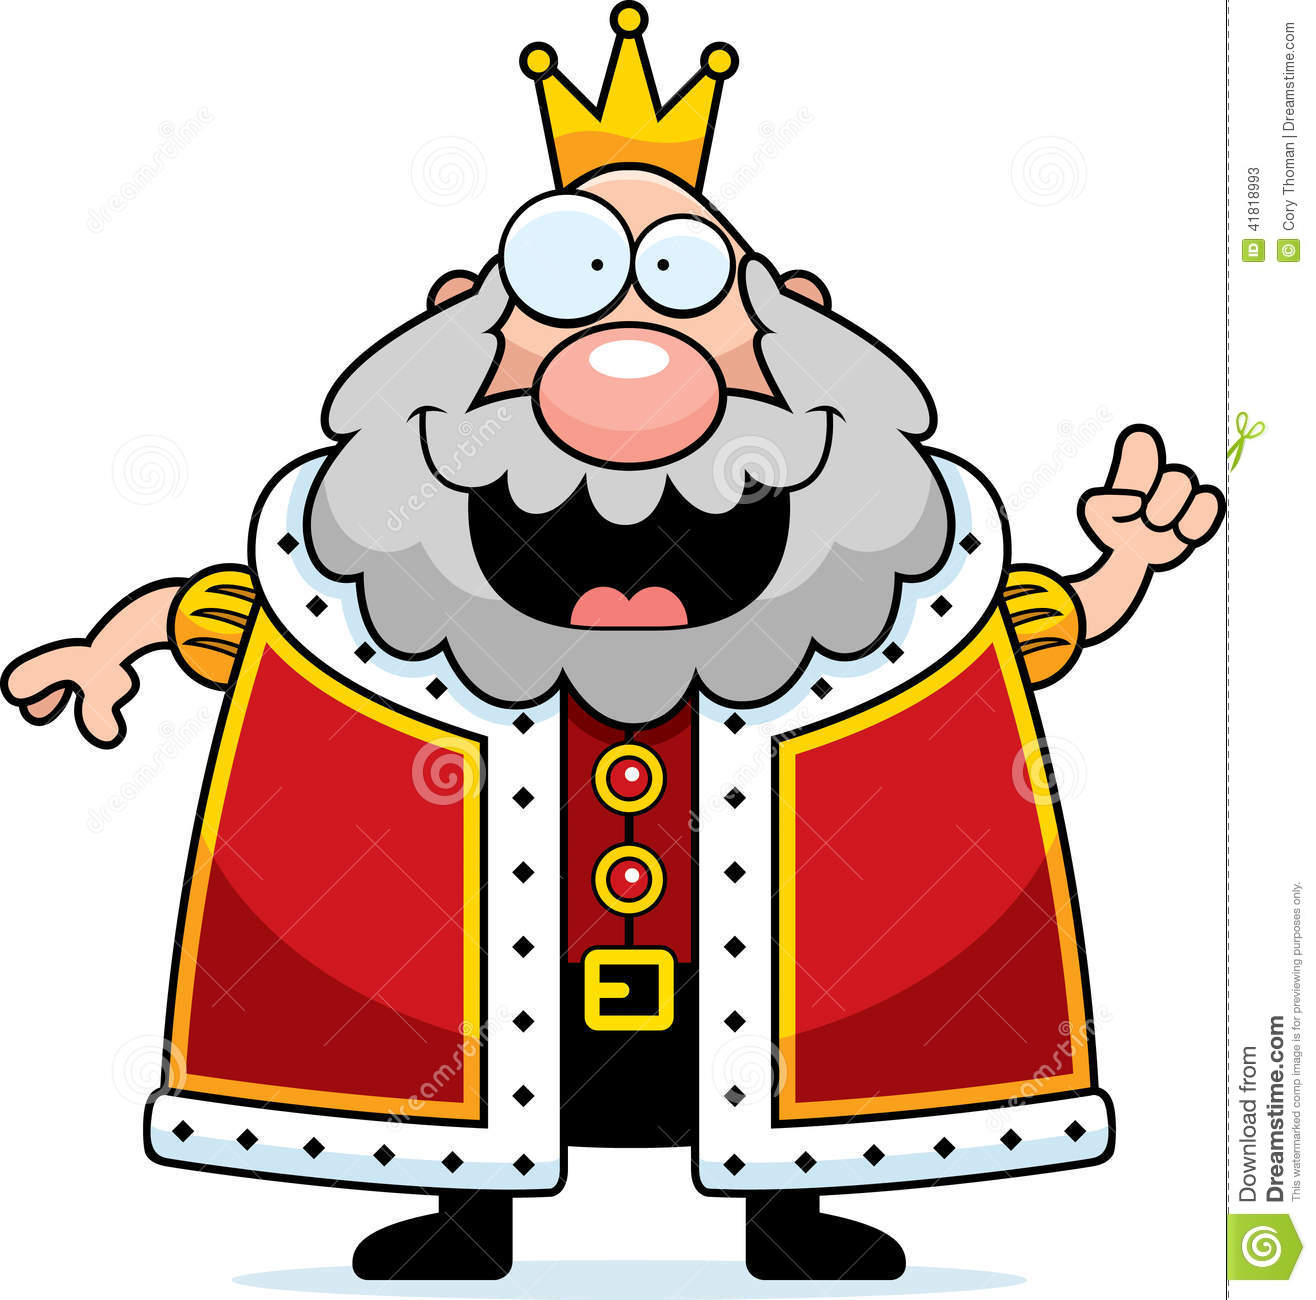 King clipart image library stock King Clip Art & King Clip Art Clip Art Images - ClipartALL.com image library stock